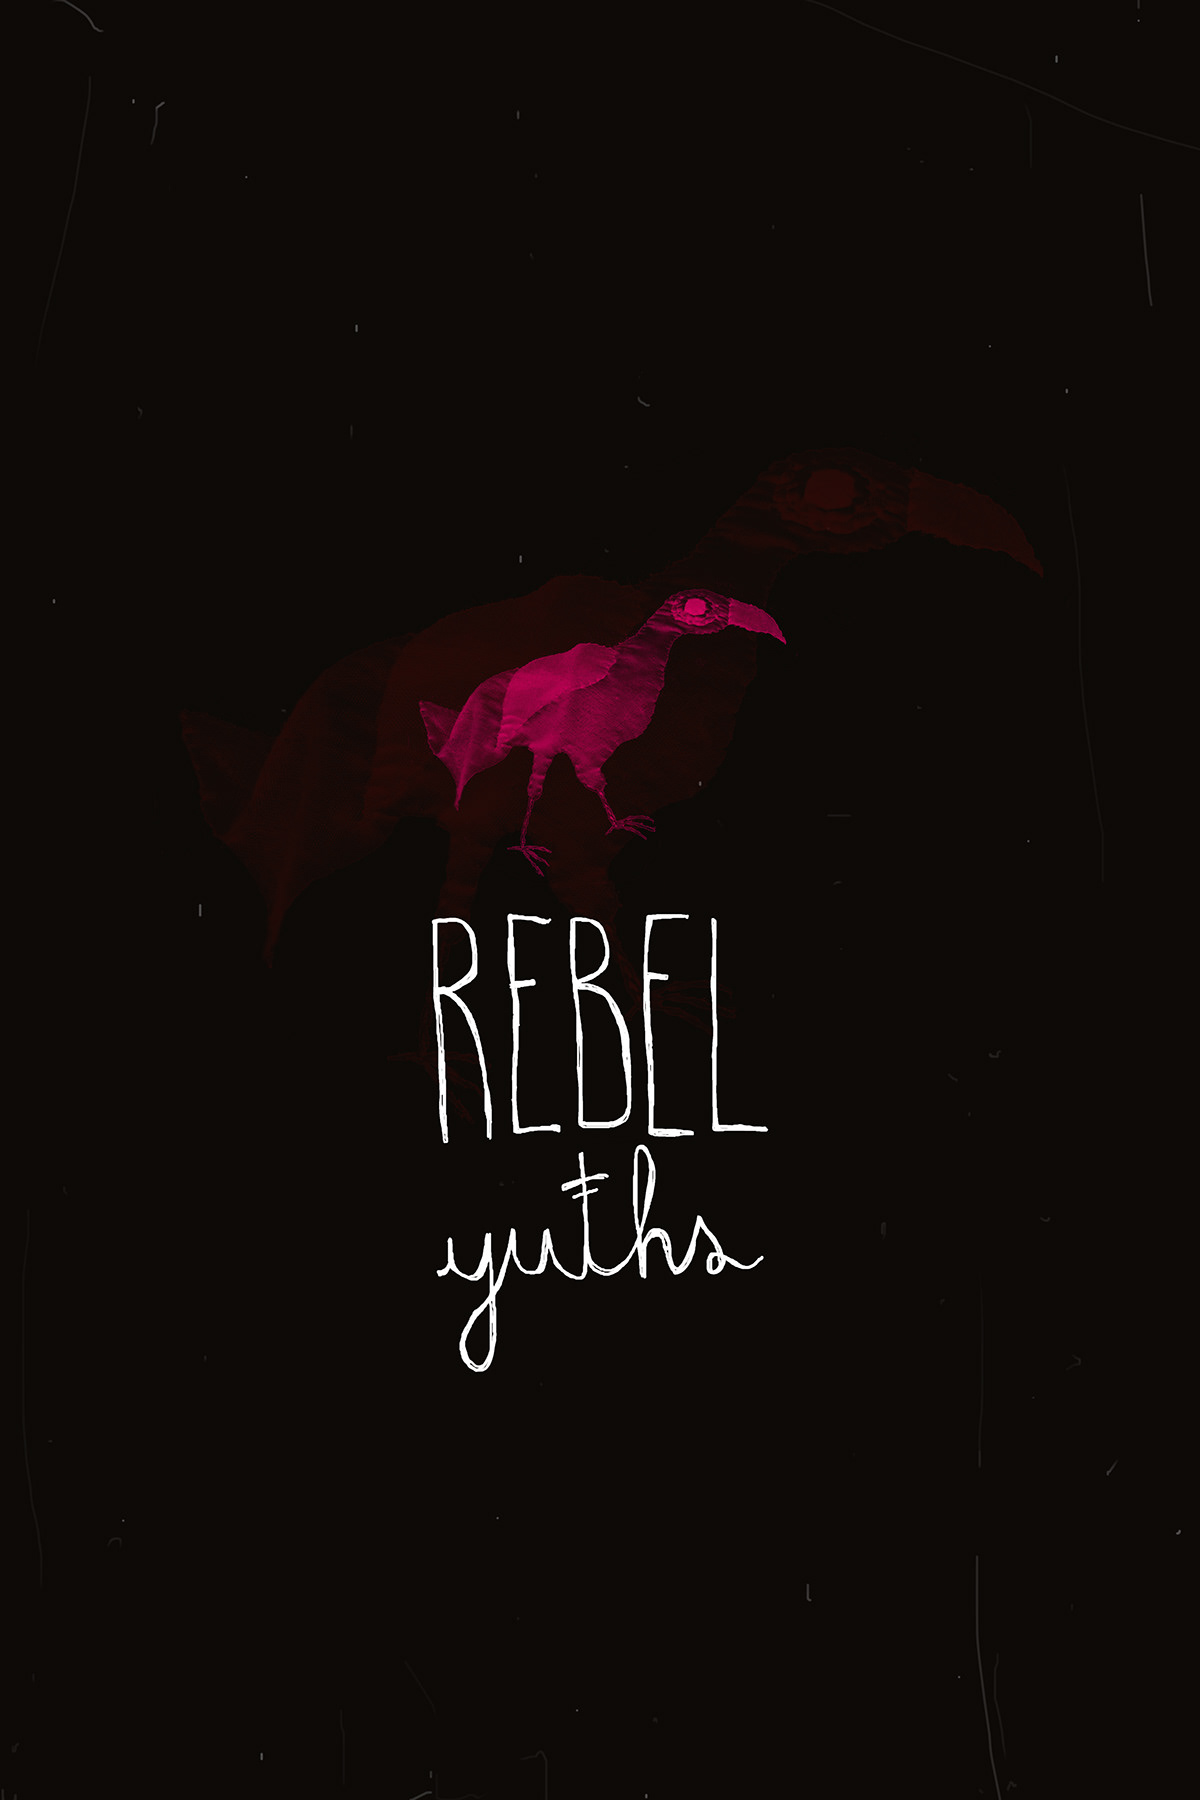 REBEL YUTHS